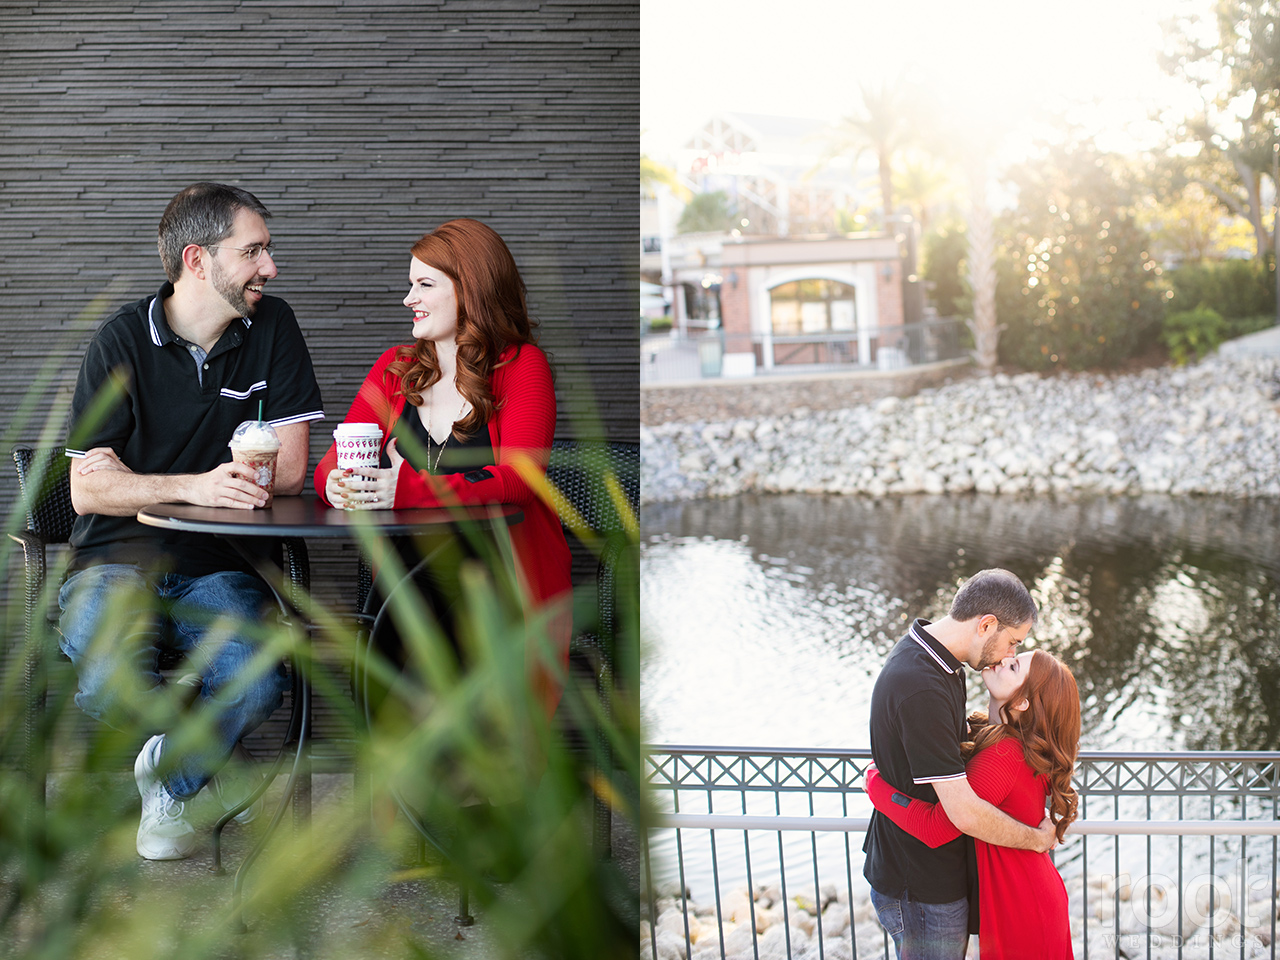 Starbucks Coffee engagement session at Disney Springs in Orlando